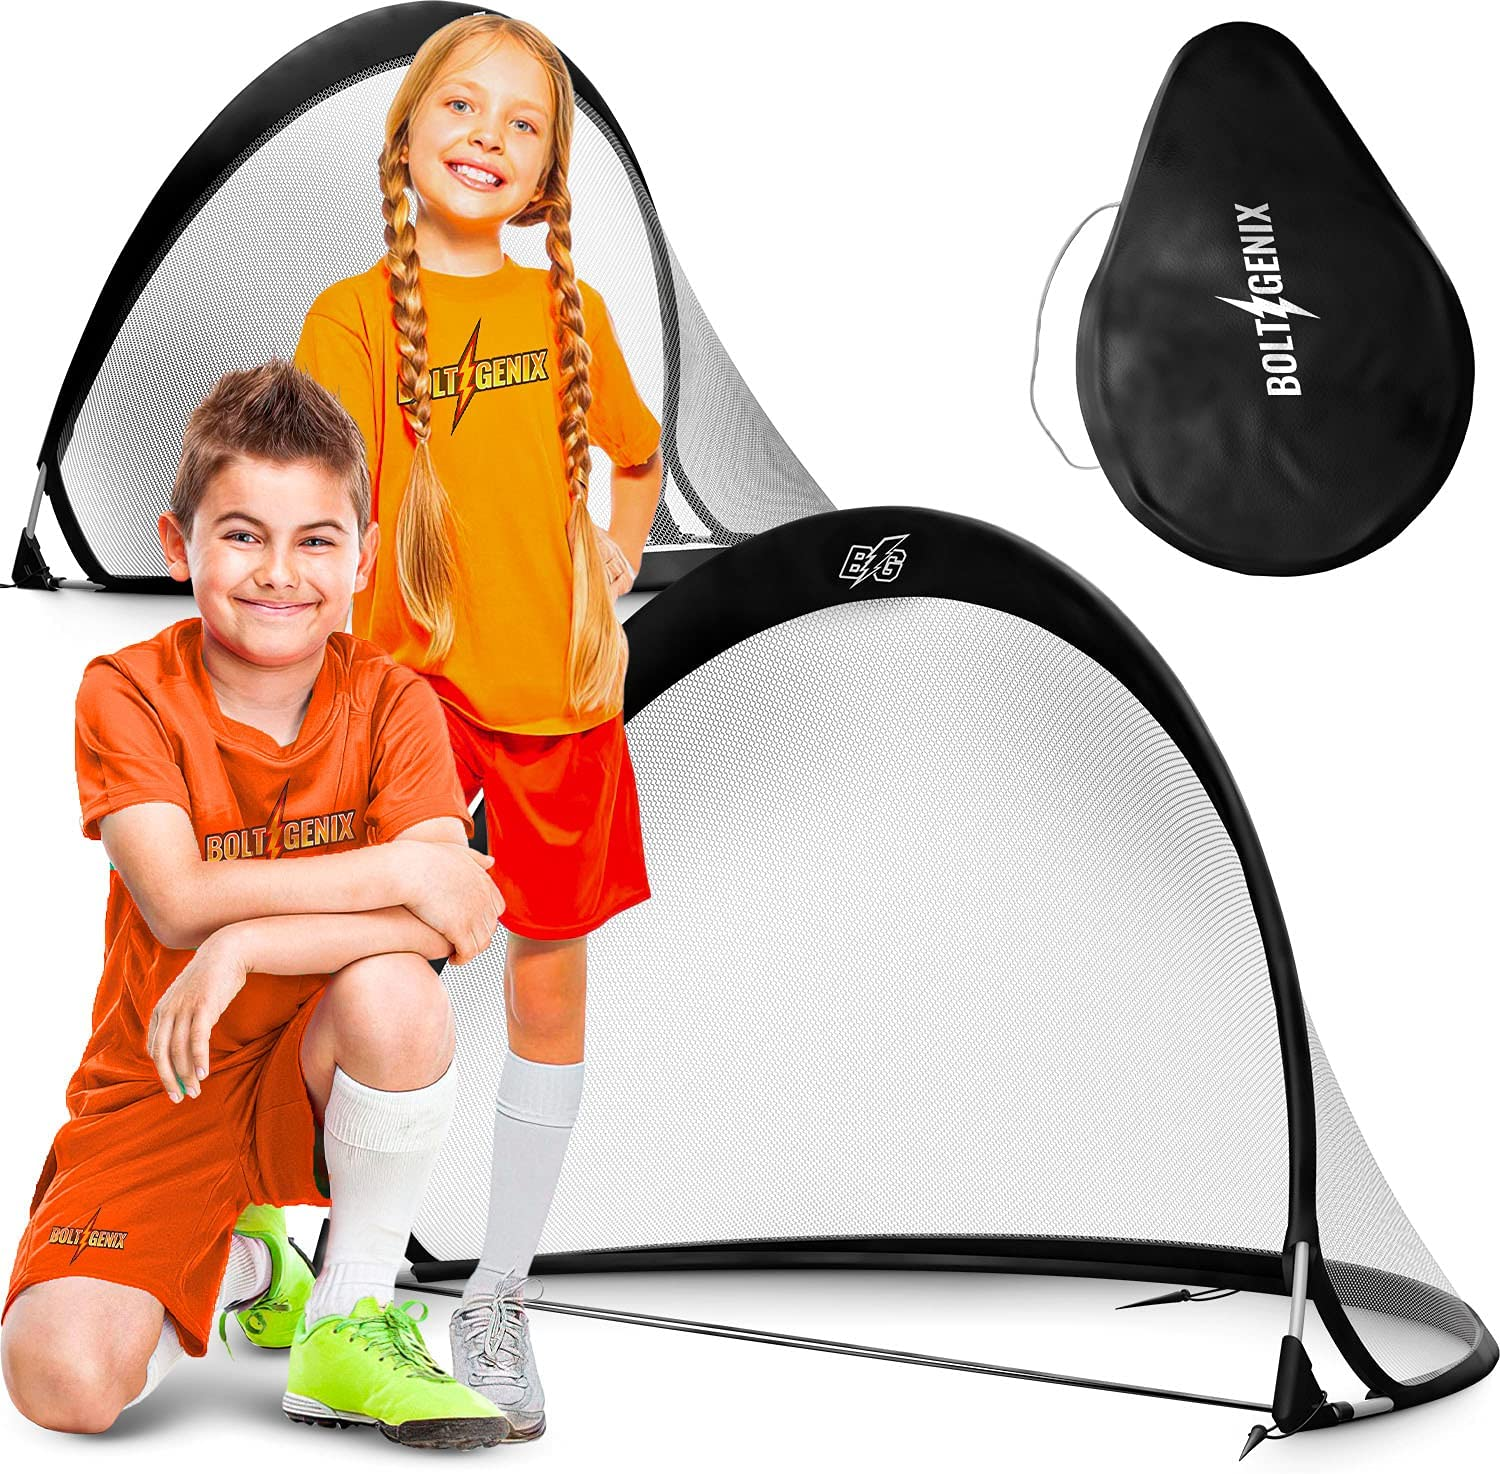 Bolt Genix Small Portable Soccer Goals - Max 57% OFF 2 Set Today's only Pop Up of